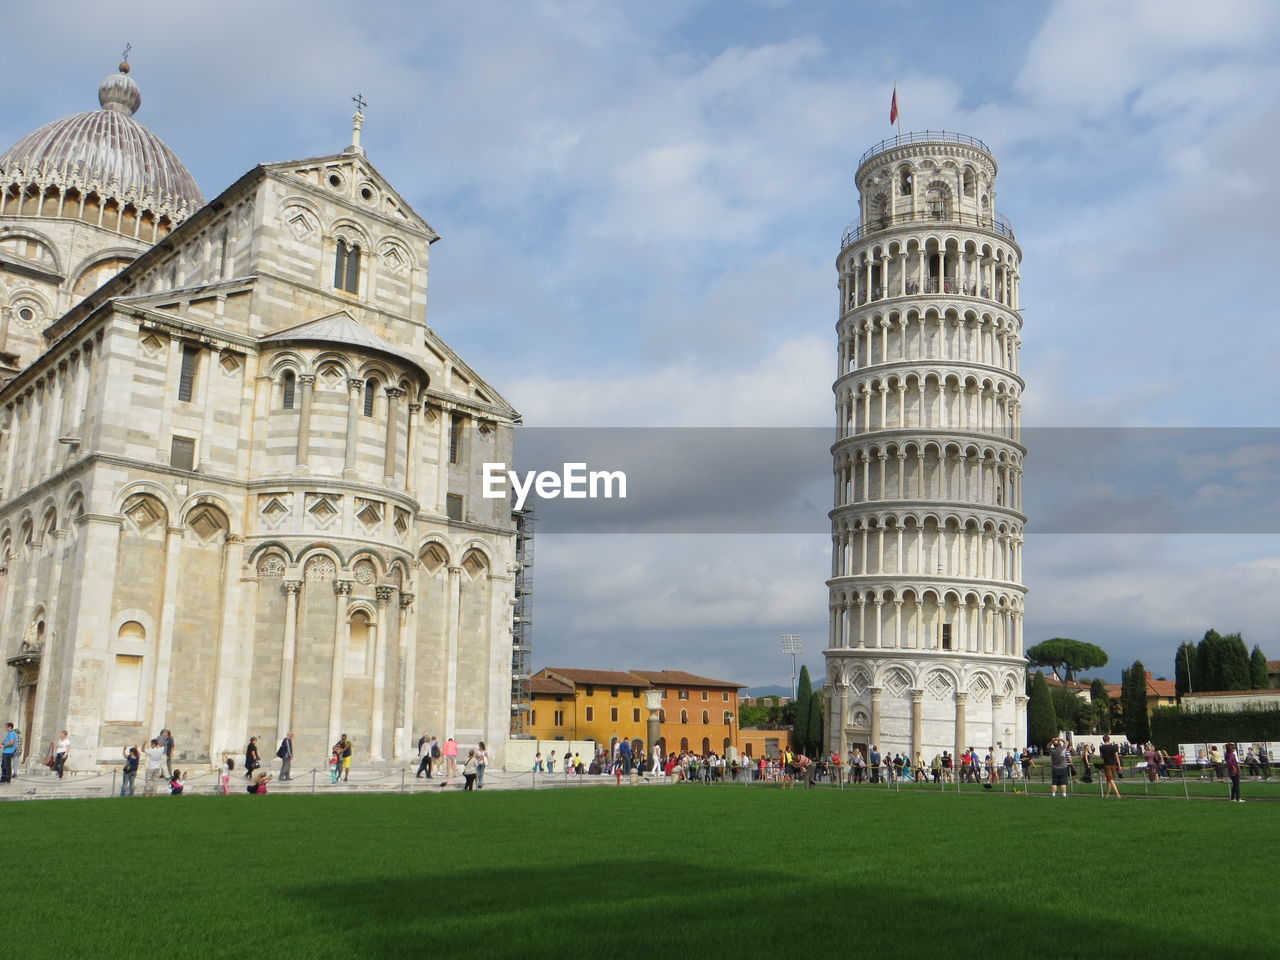 Leaning tower of pisa and cathedral against cloudy sky at piazza dei miracoli